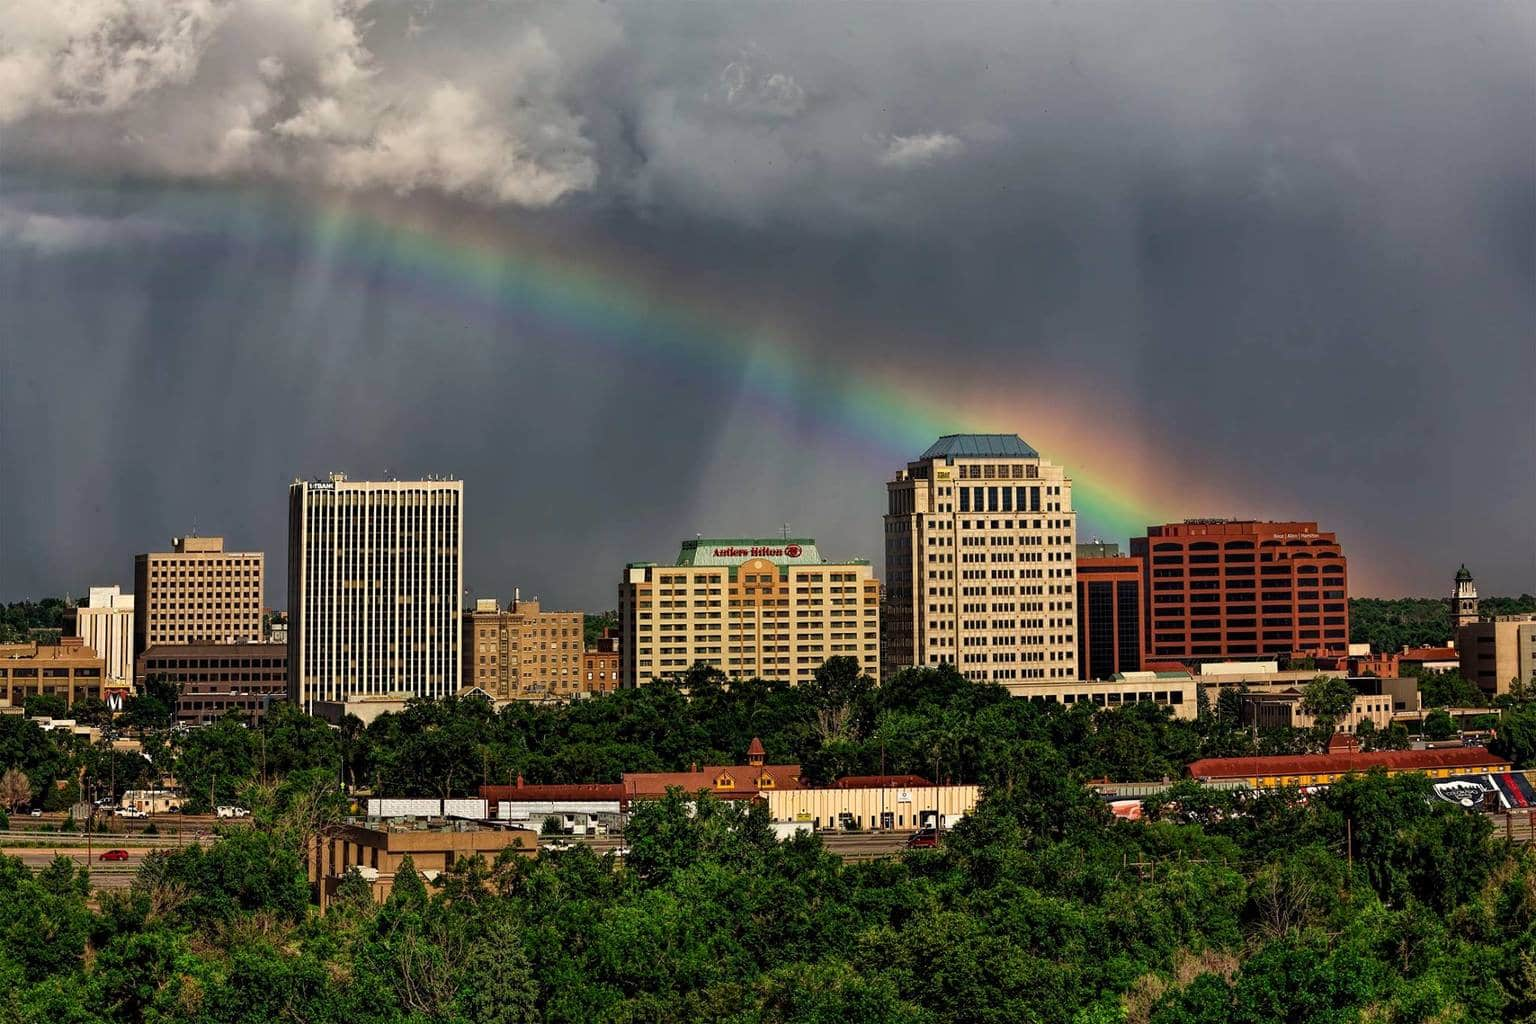 After the storm, a Colorado Springs rainbow.